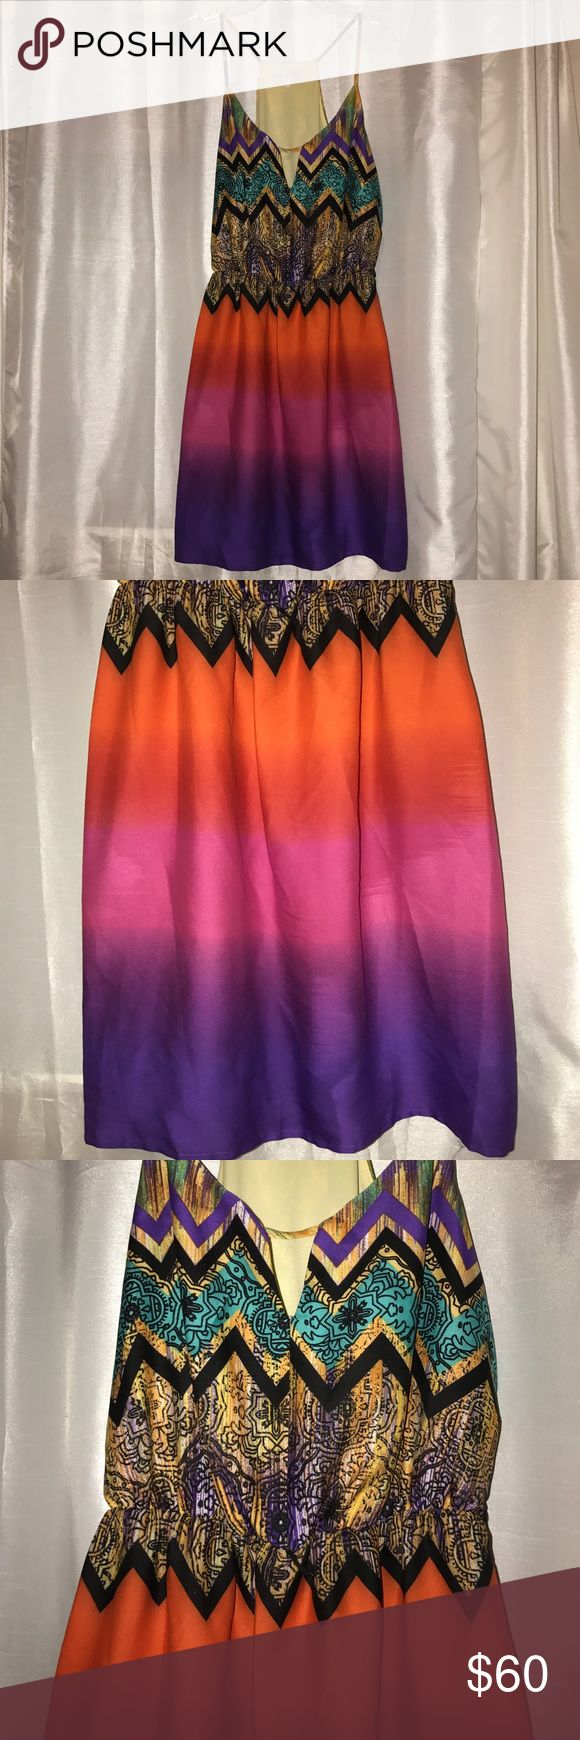 Gianni Bini Dress This dress is stunning. Great quality! Came with a belt but I no longer have it. Racerback style. Waist has elastic for some stretch! Gianni Bini Dresses